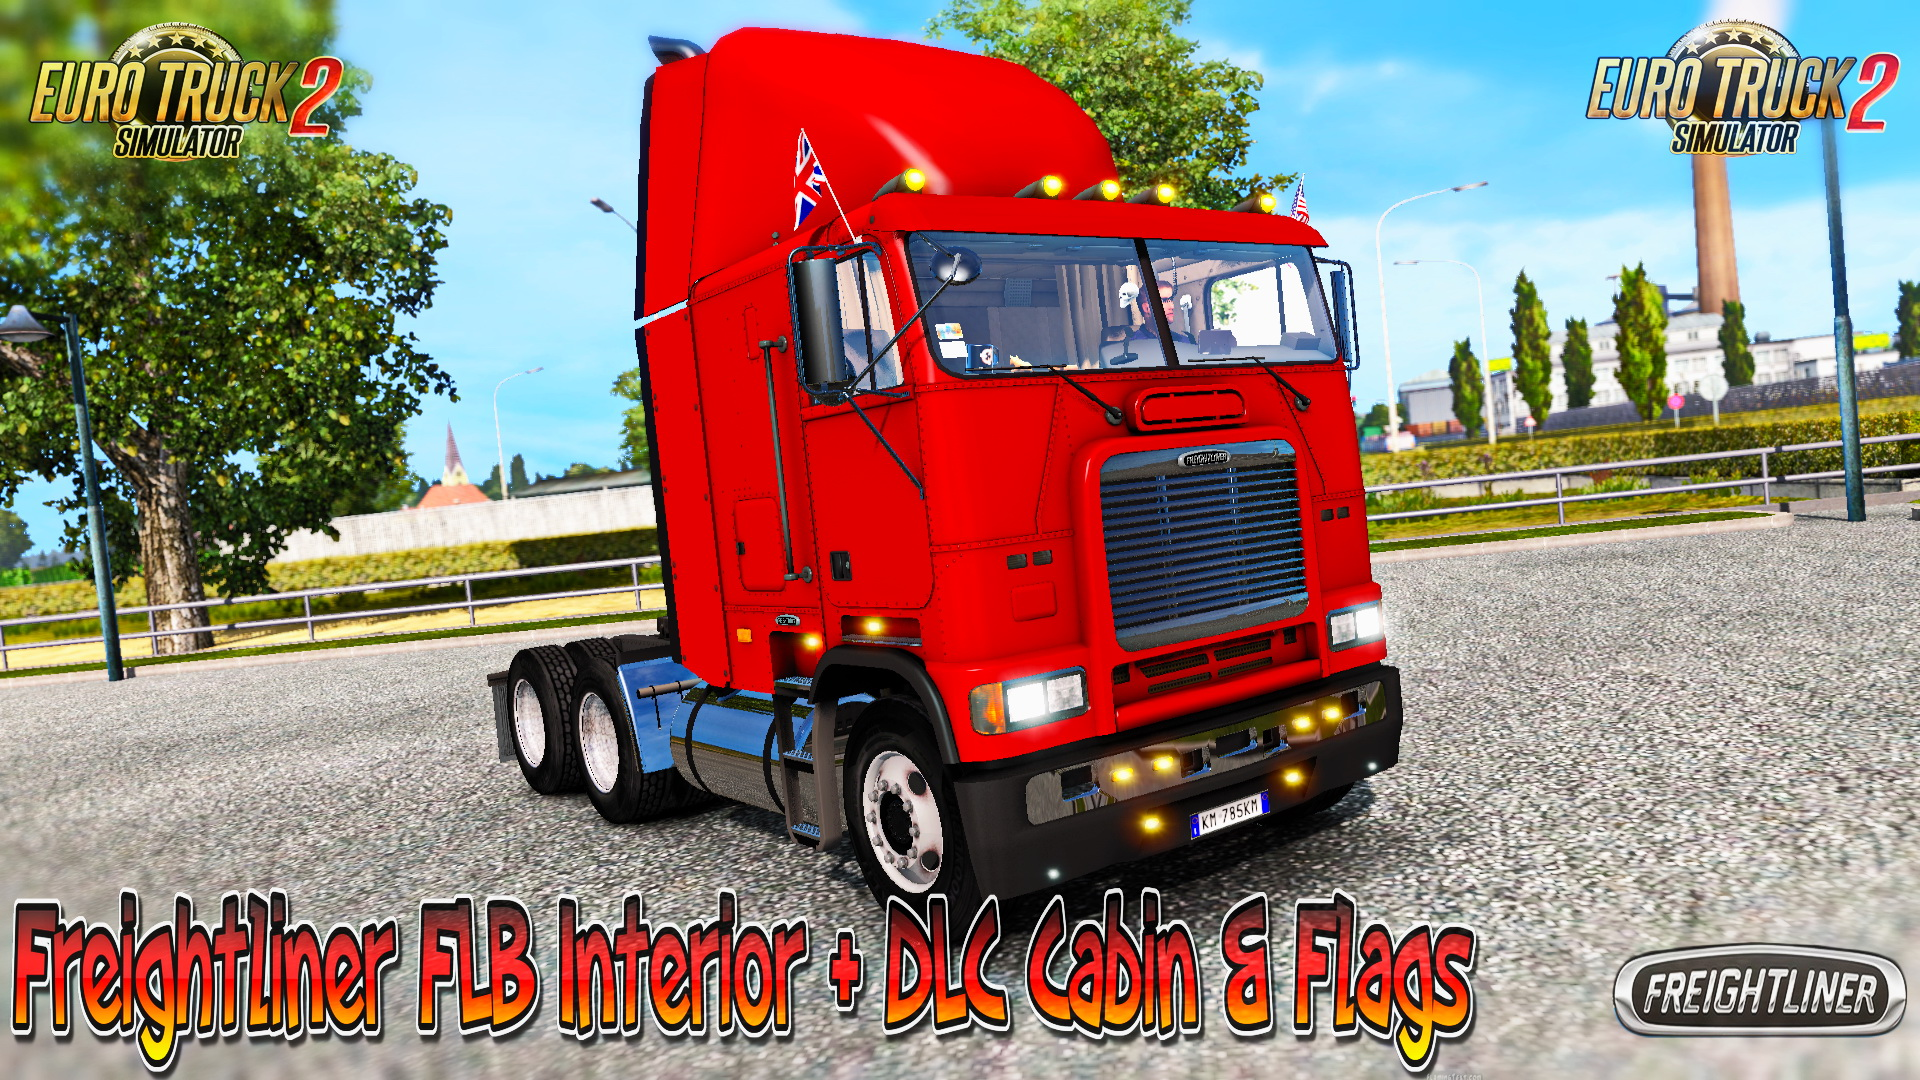 Freightliner FLB Interior + DLC Cabin & Flags v2.0 for ETS 2 (Euro Truck Simulator 2)